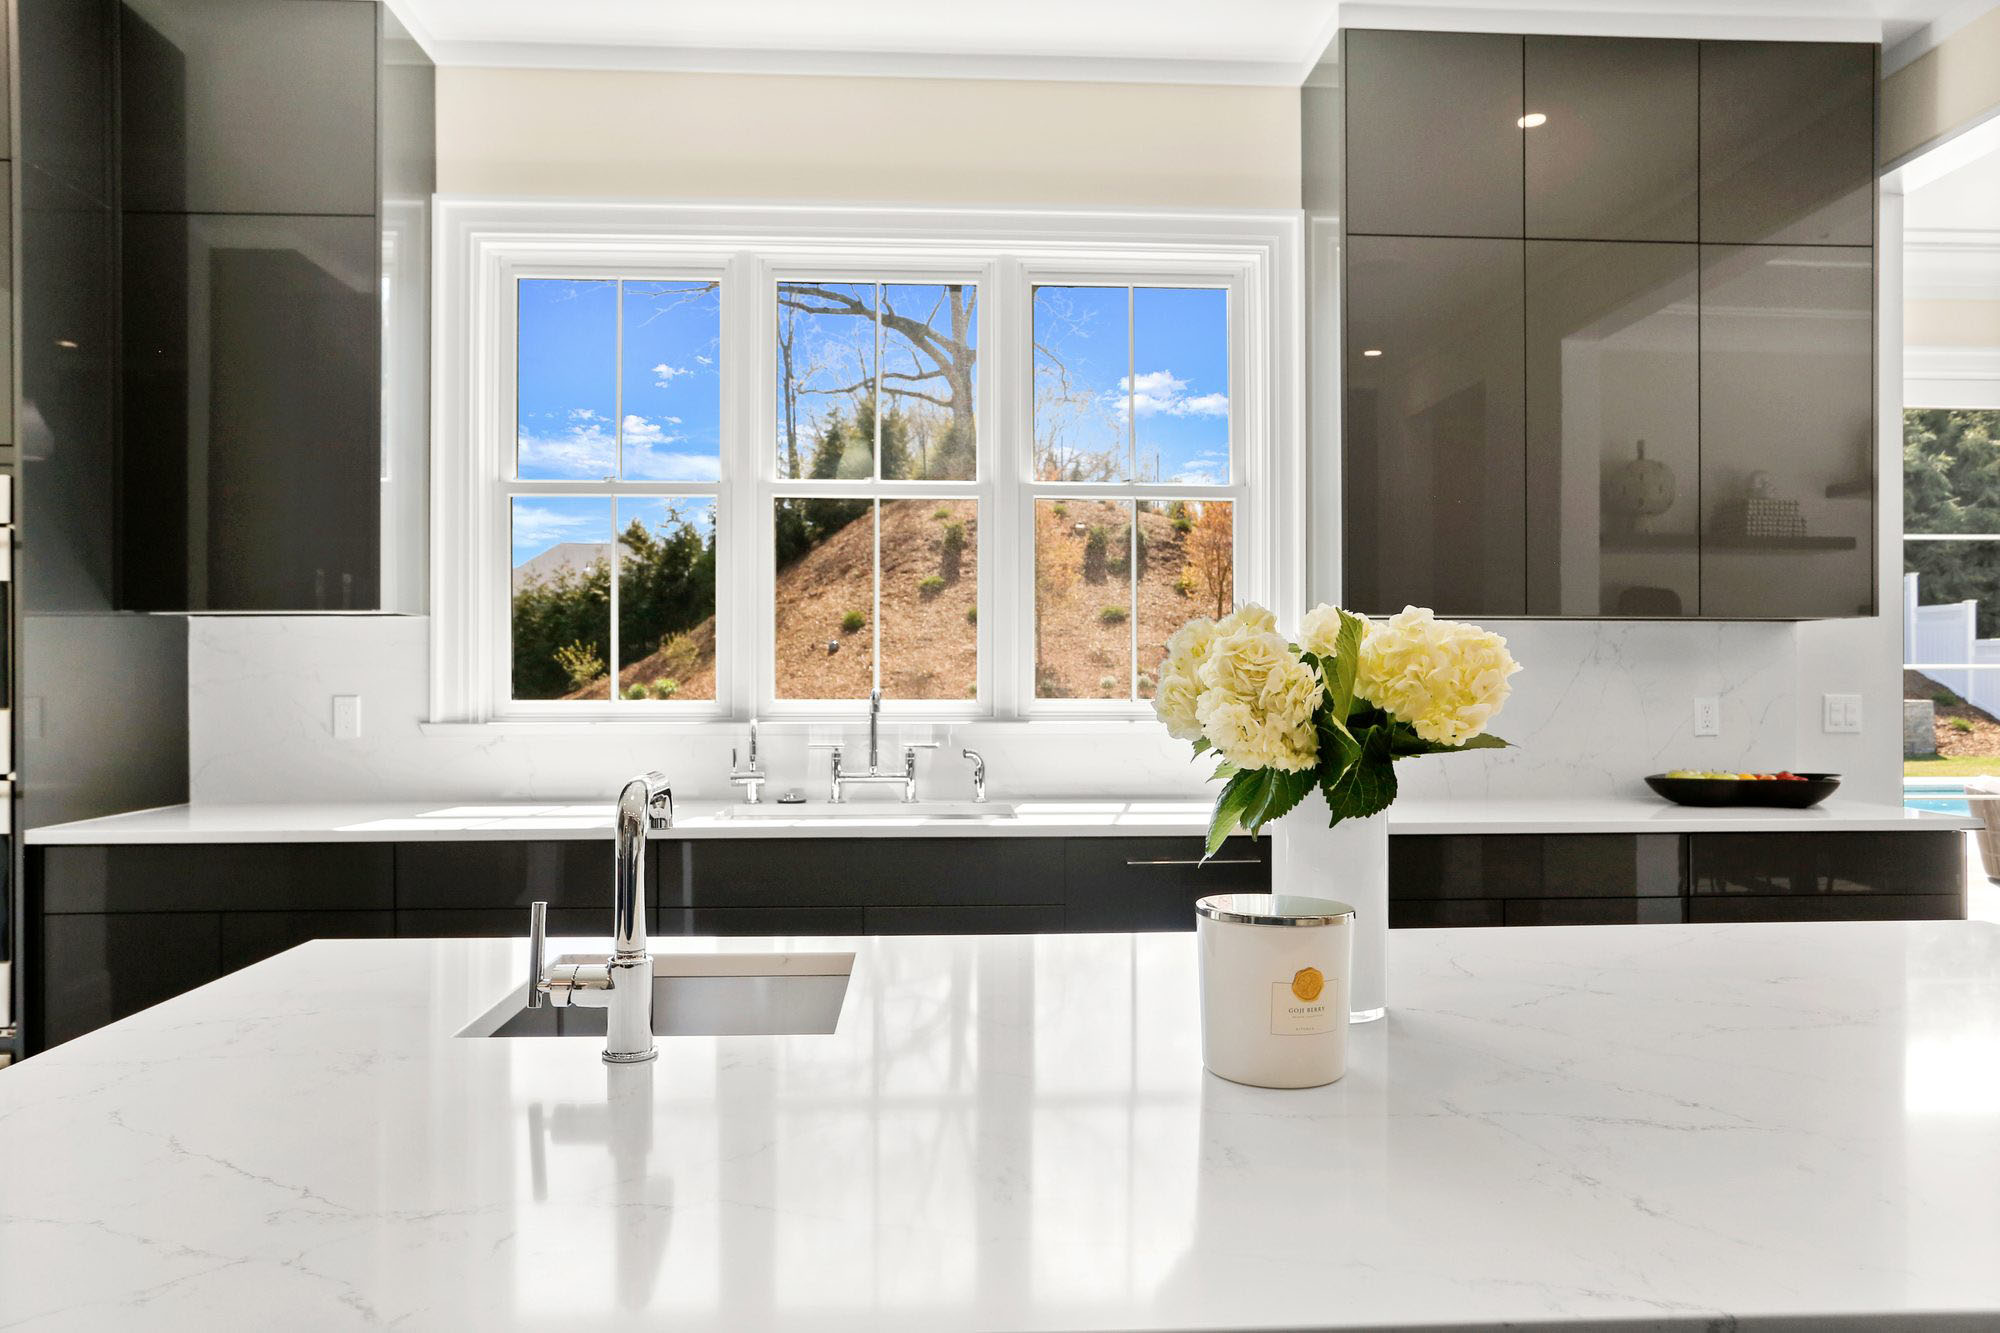 Transitional kitchen design with flat faced black cabinets, white quartz countertops and traditional trim.